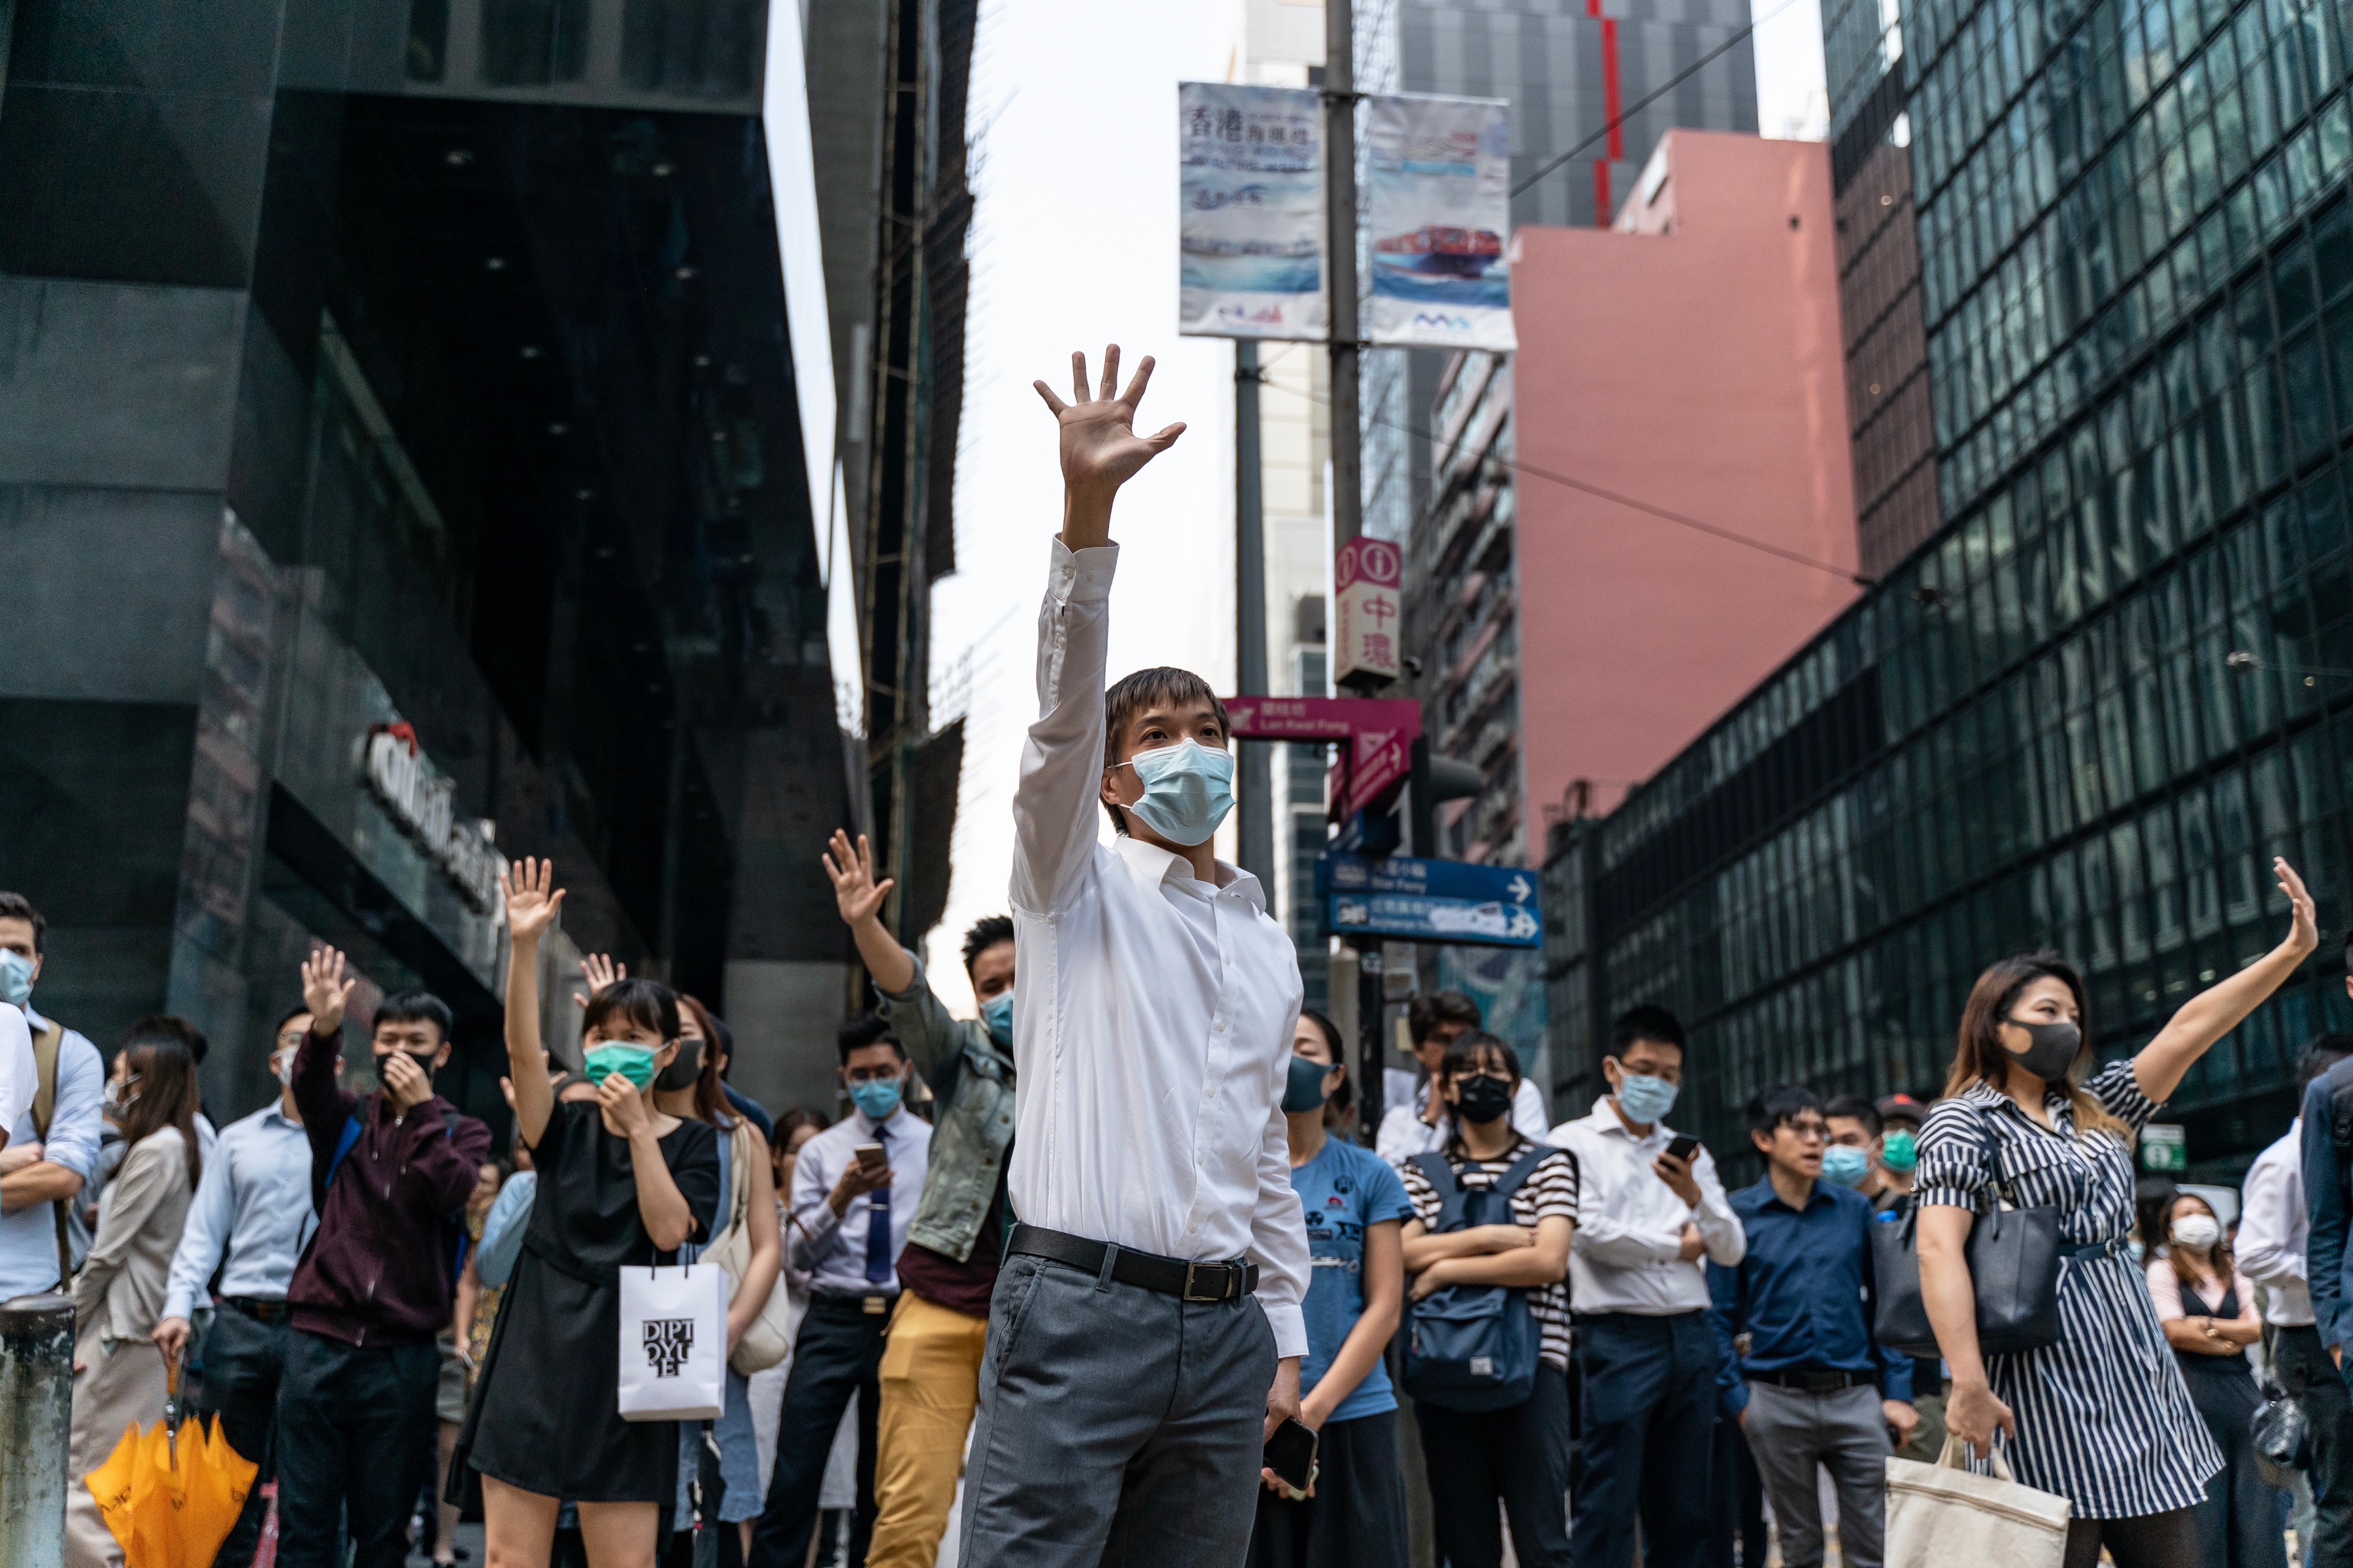 In First Public Mention of Hong Kong Crisis, Chinese Leader Xi Uses Harsh Rhetoric to Criticize Protesters